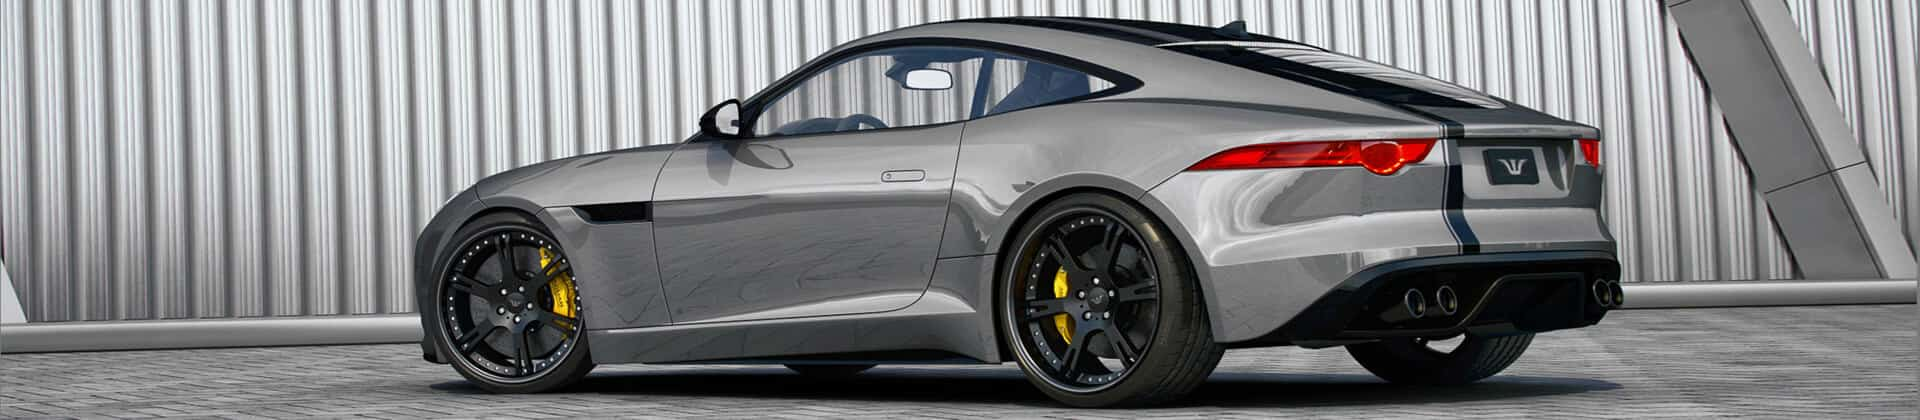 Jaguar F-Type tuning with wheels and exhaust | Wheelsandmore